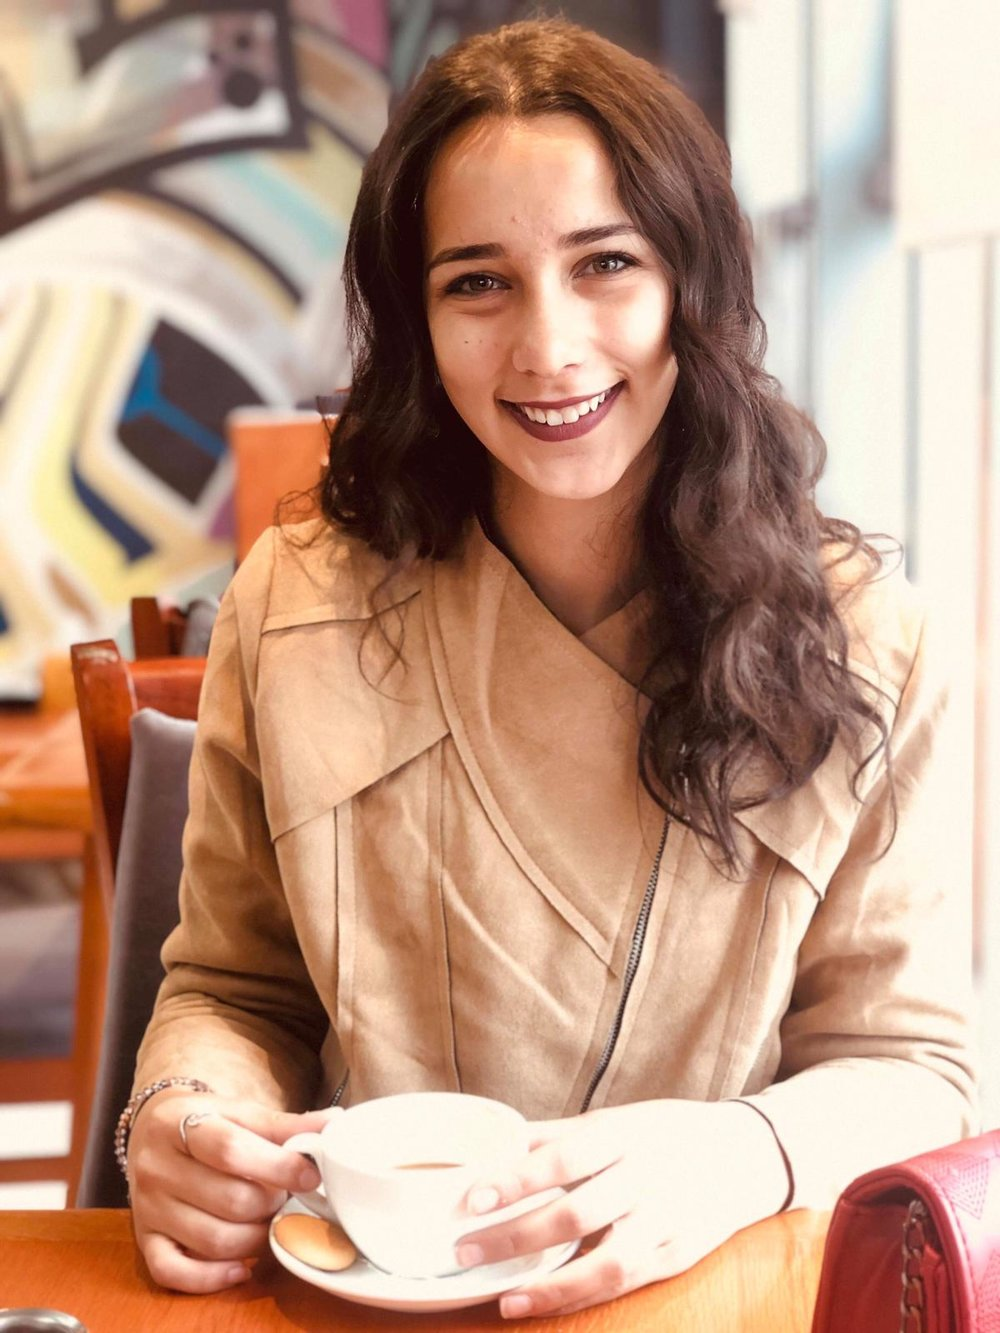 MAY SLIMAN - May is a 22-year-old French language major, with a minor in Political Science and a diploma in Education from the University of Birzeit. After receiving a scholarship to study in France, she returned to Palestine and joined Zimam. At the same time, she was working 3 jobs in order to support herself and her siblings. Through hard work and perseverance, she has become the Student President of her faculty at Birzeit, which she describes as her biggest achievement so far.